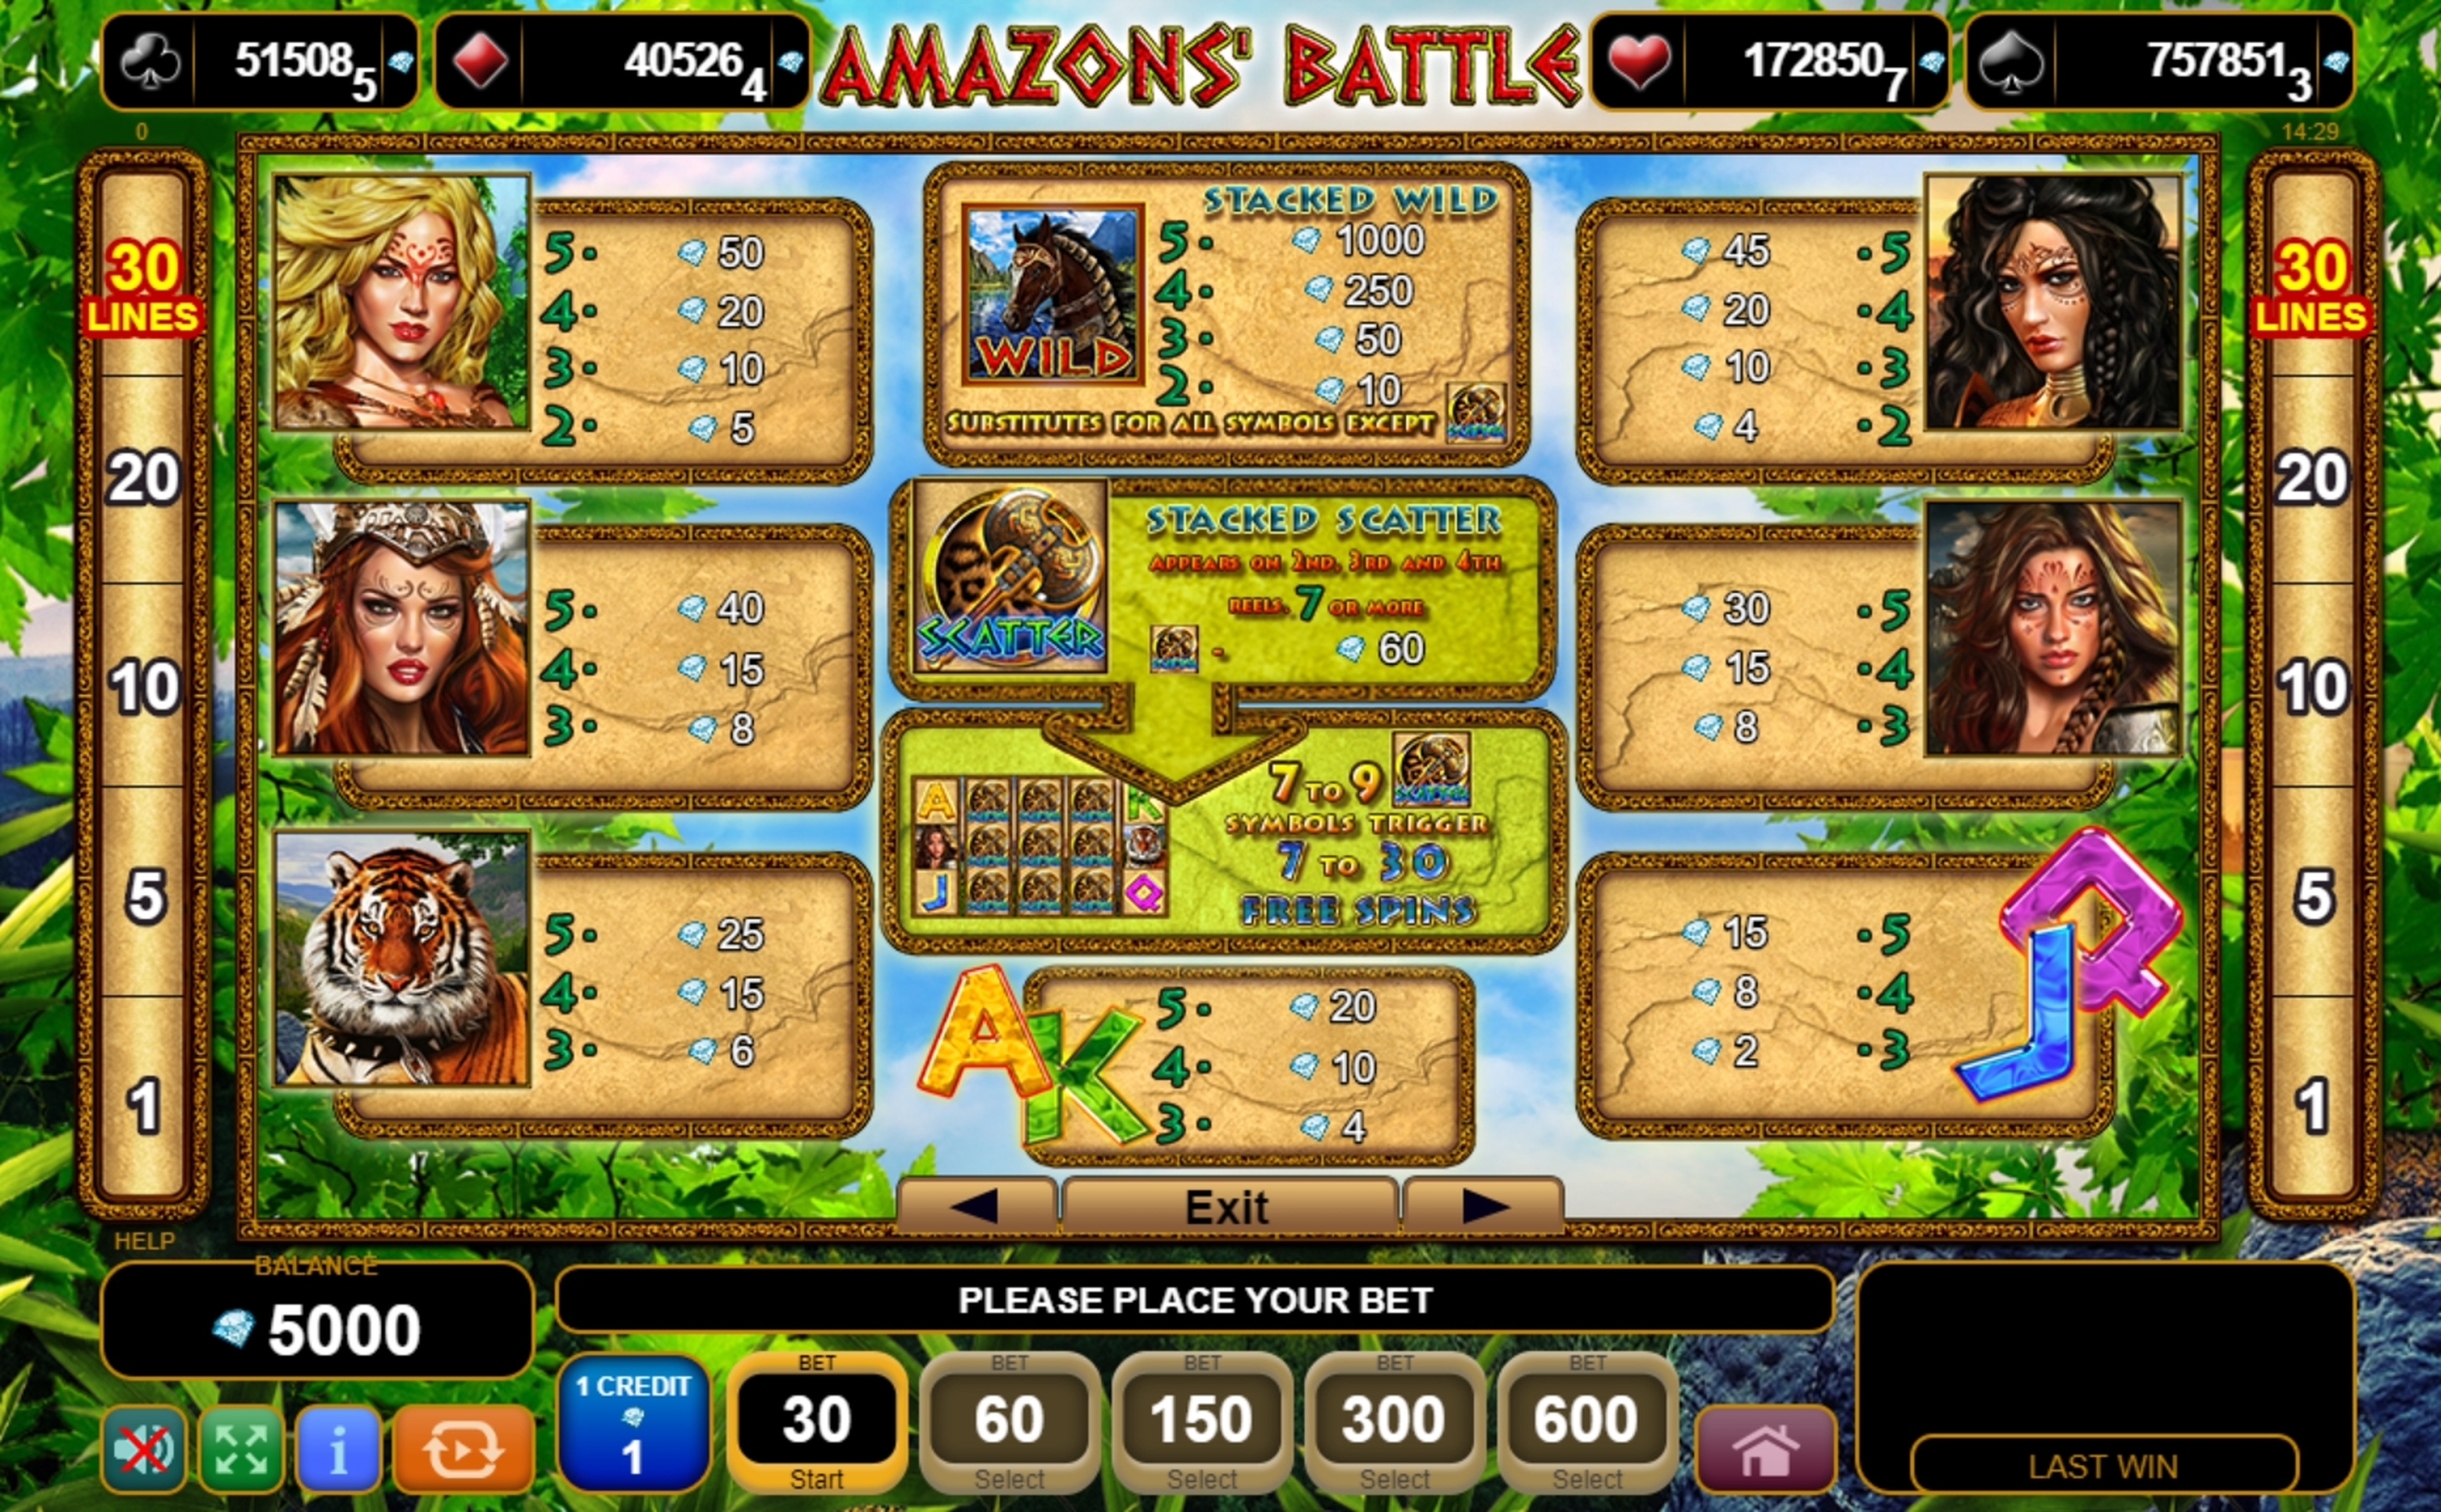 Club questions battle slots play free battlethemed slot machine games ultimate